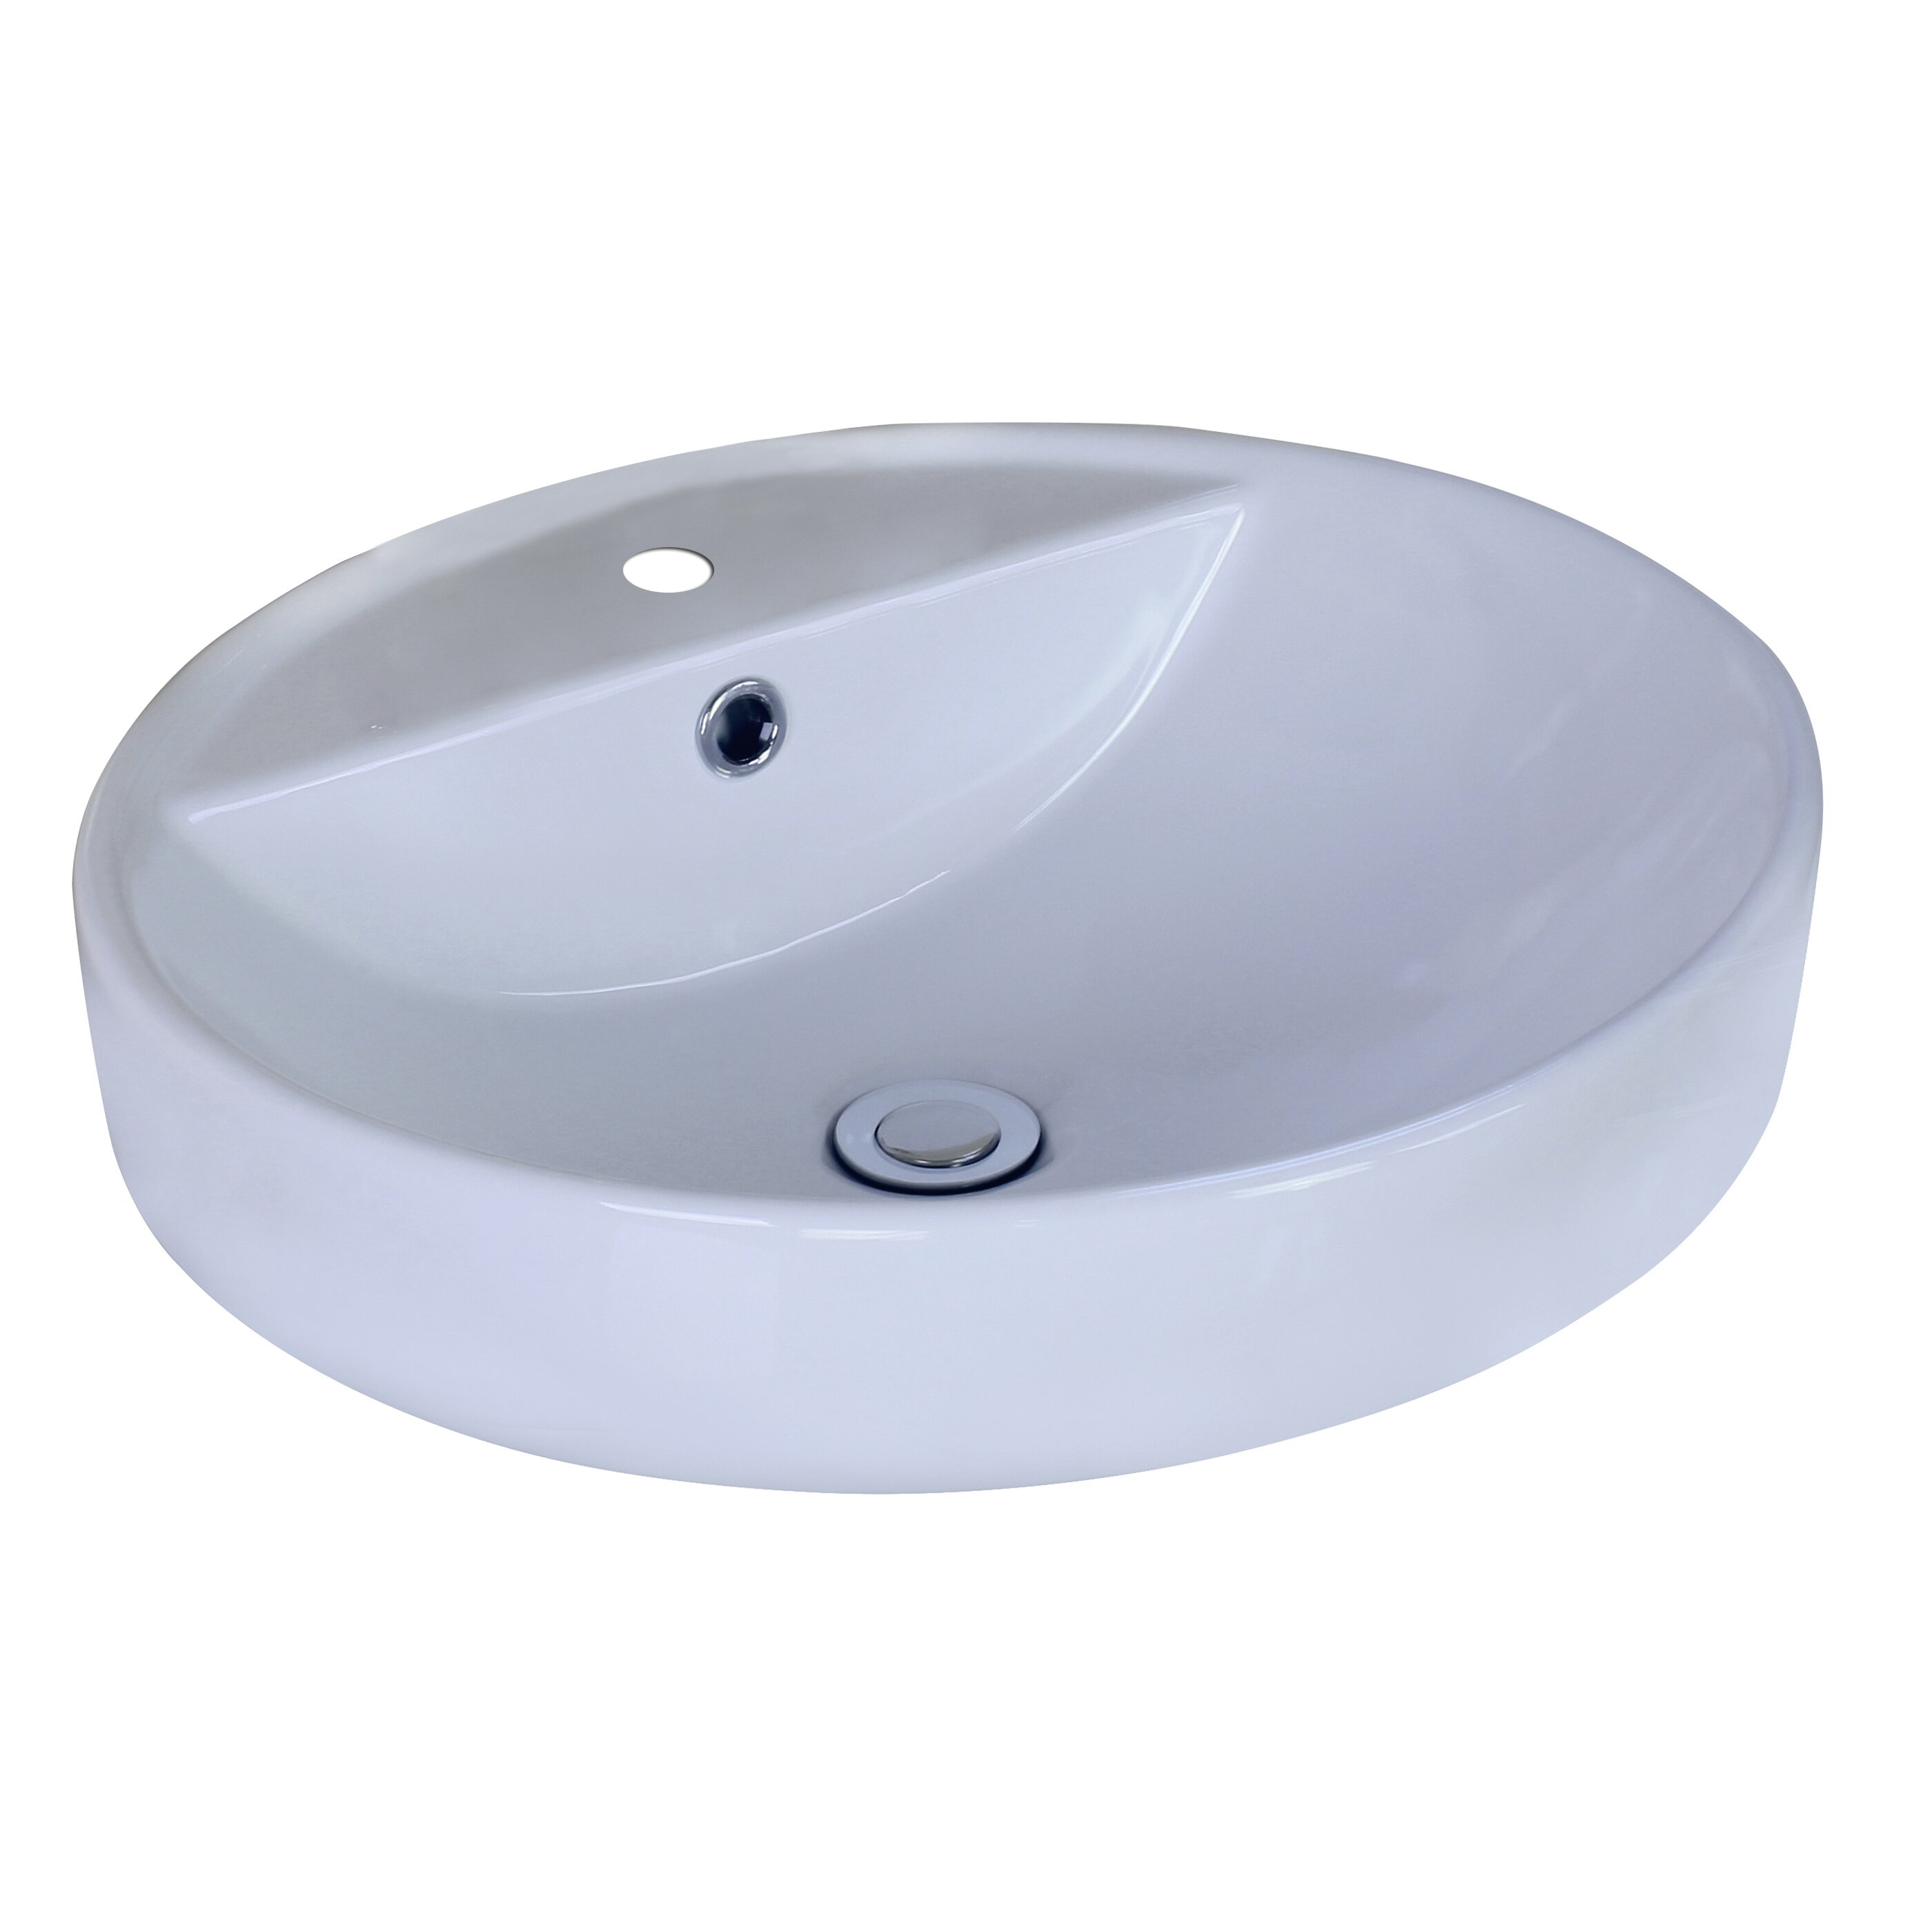 Vessel Sink Overflow : Round Vessel Sink with Overflow by American Imaginations